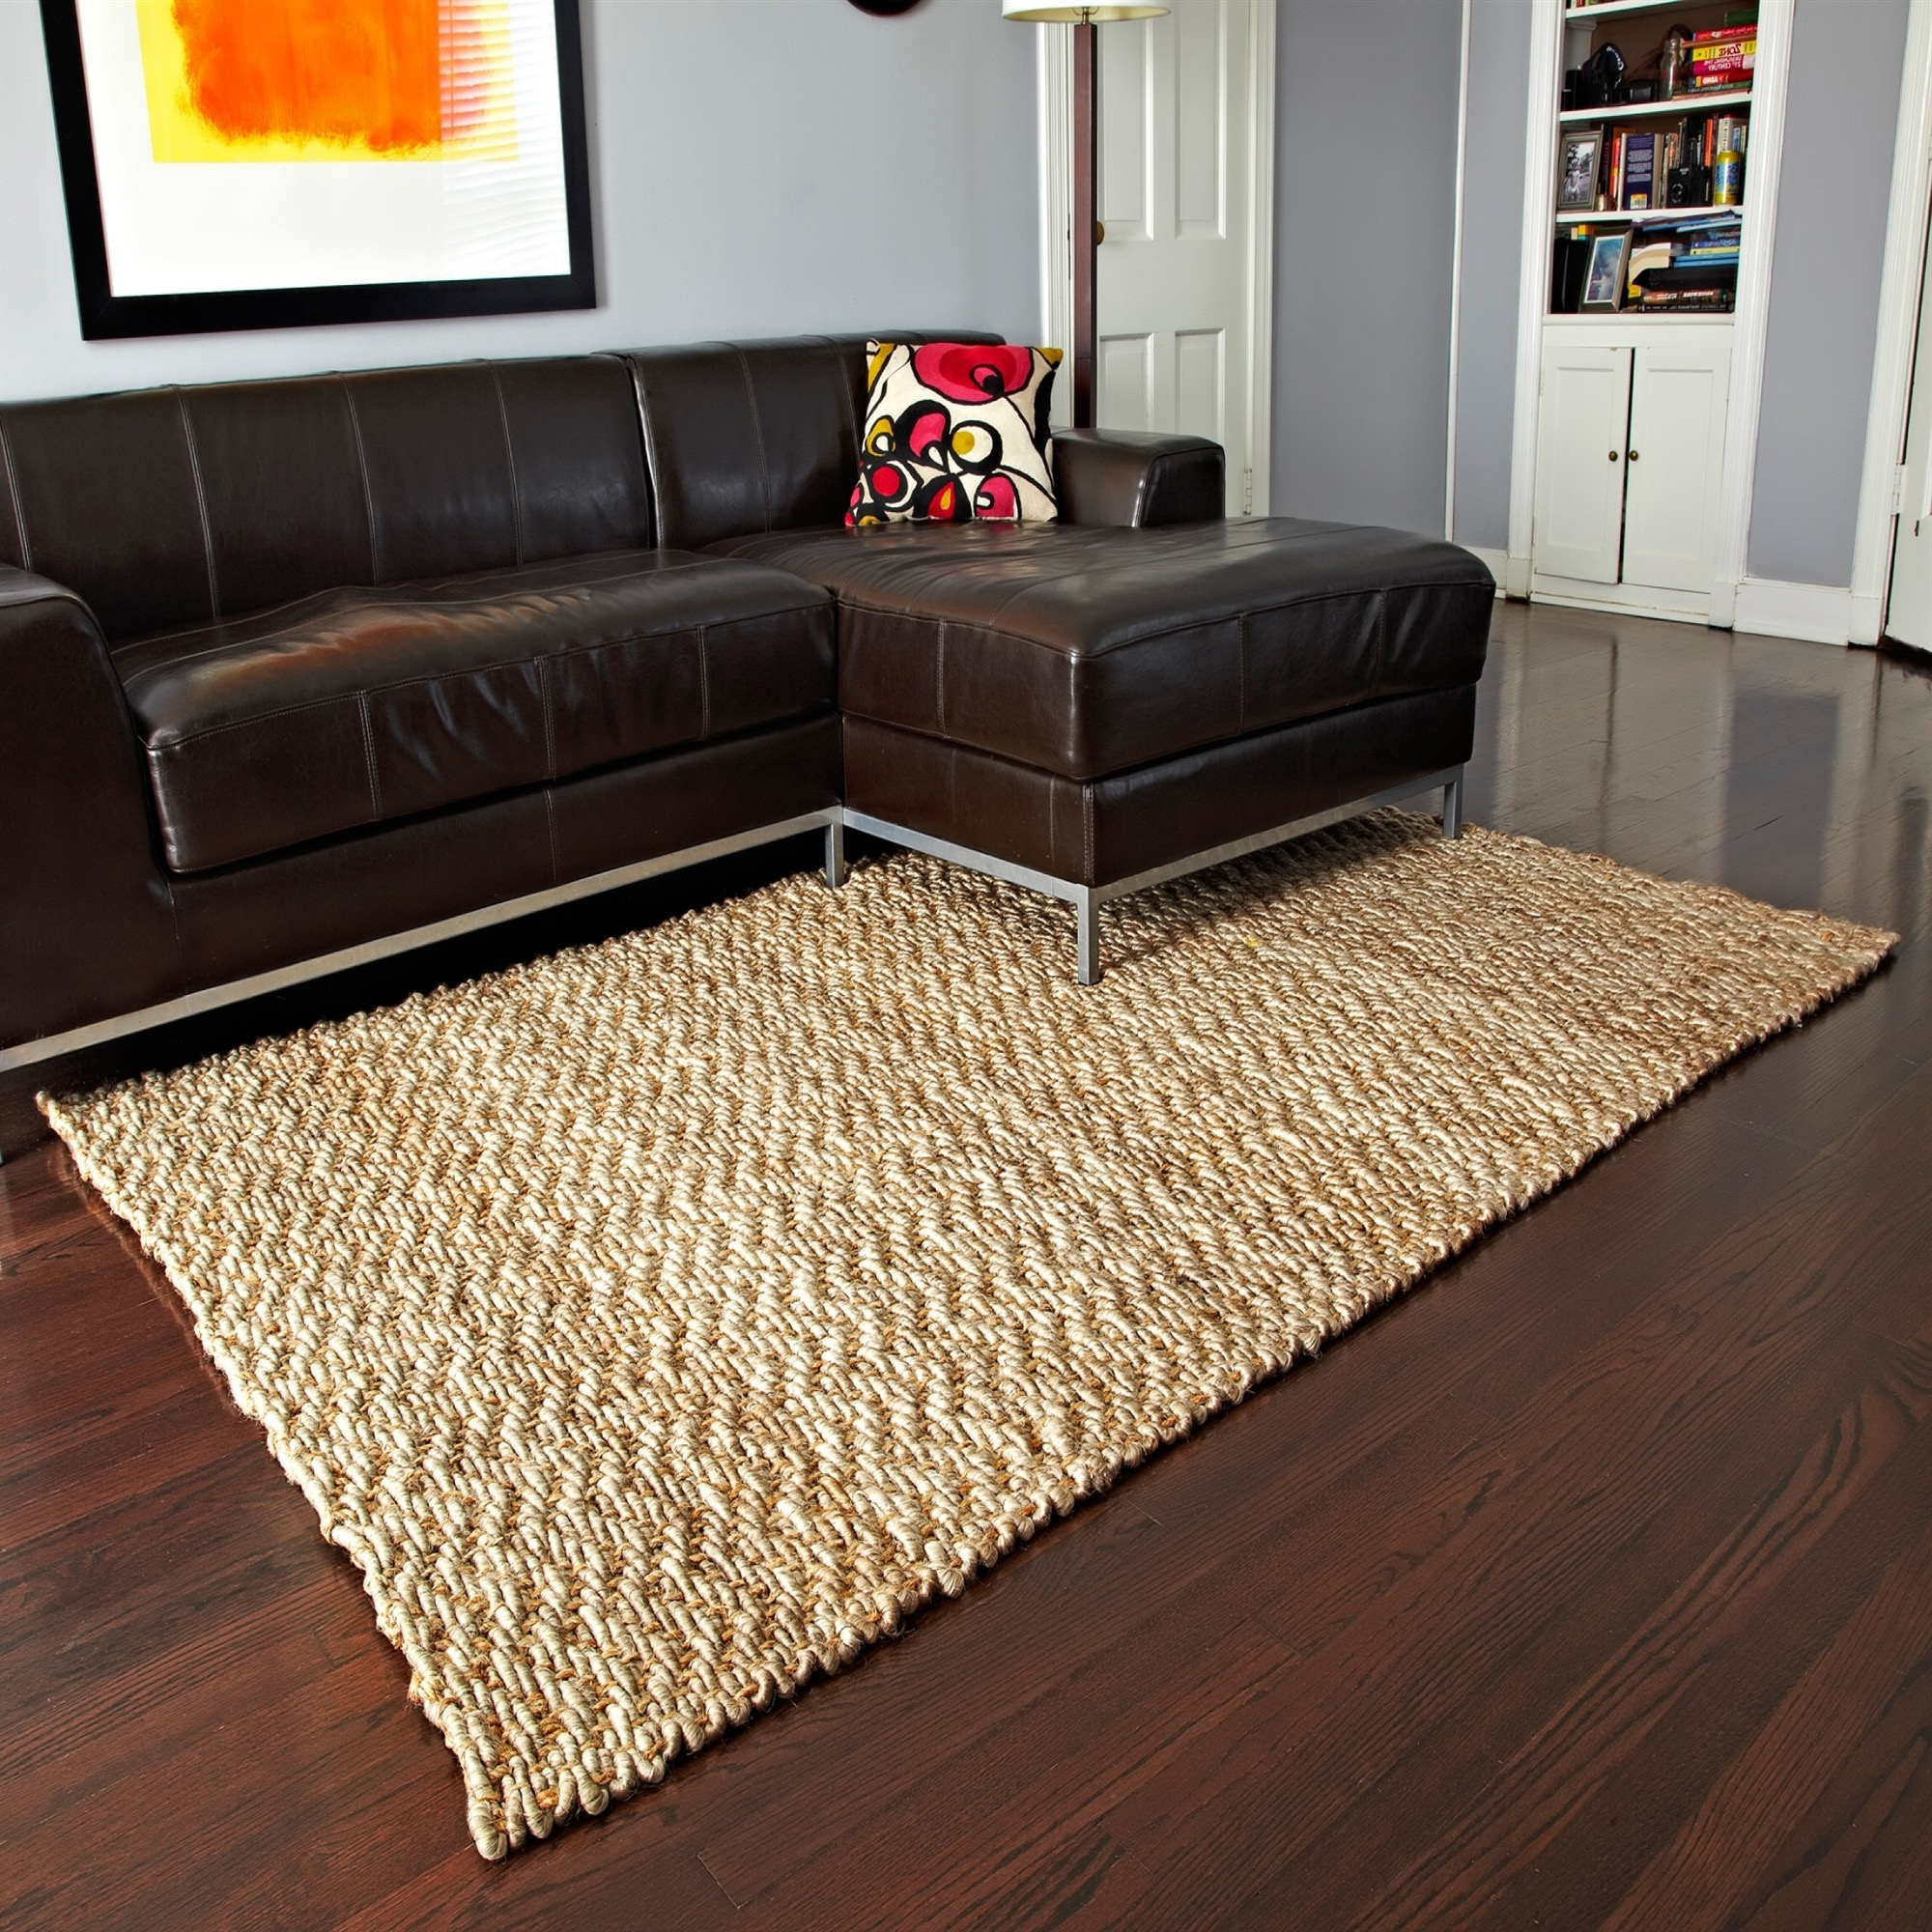 15 Stunning Braided Rugs Decor Ideas Custom Home Design